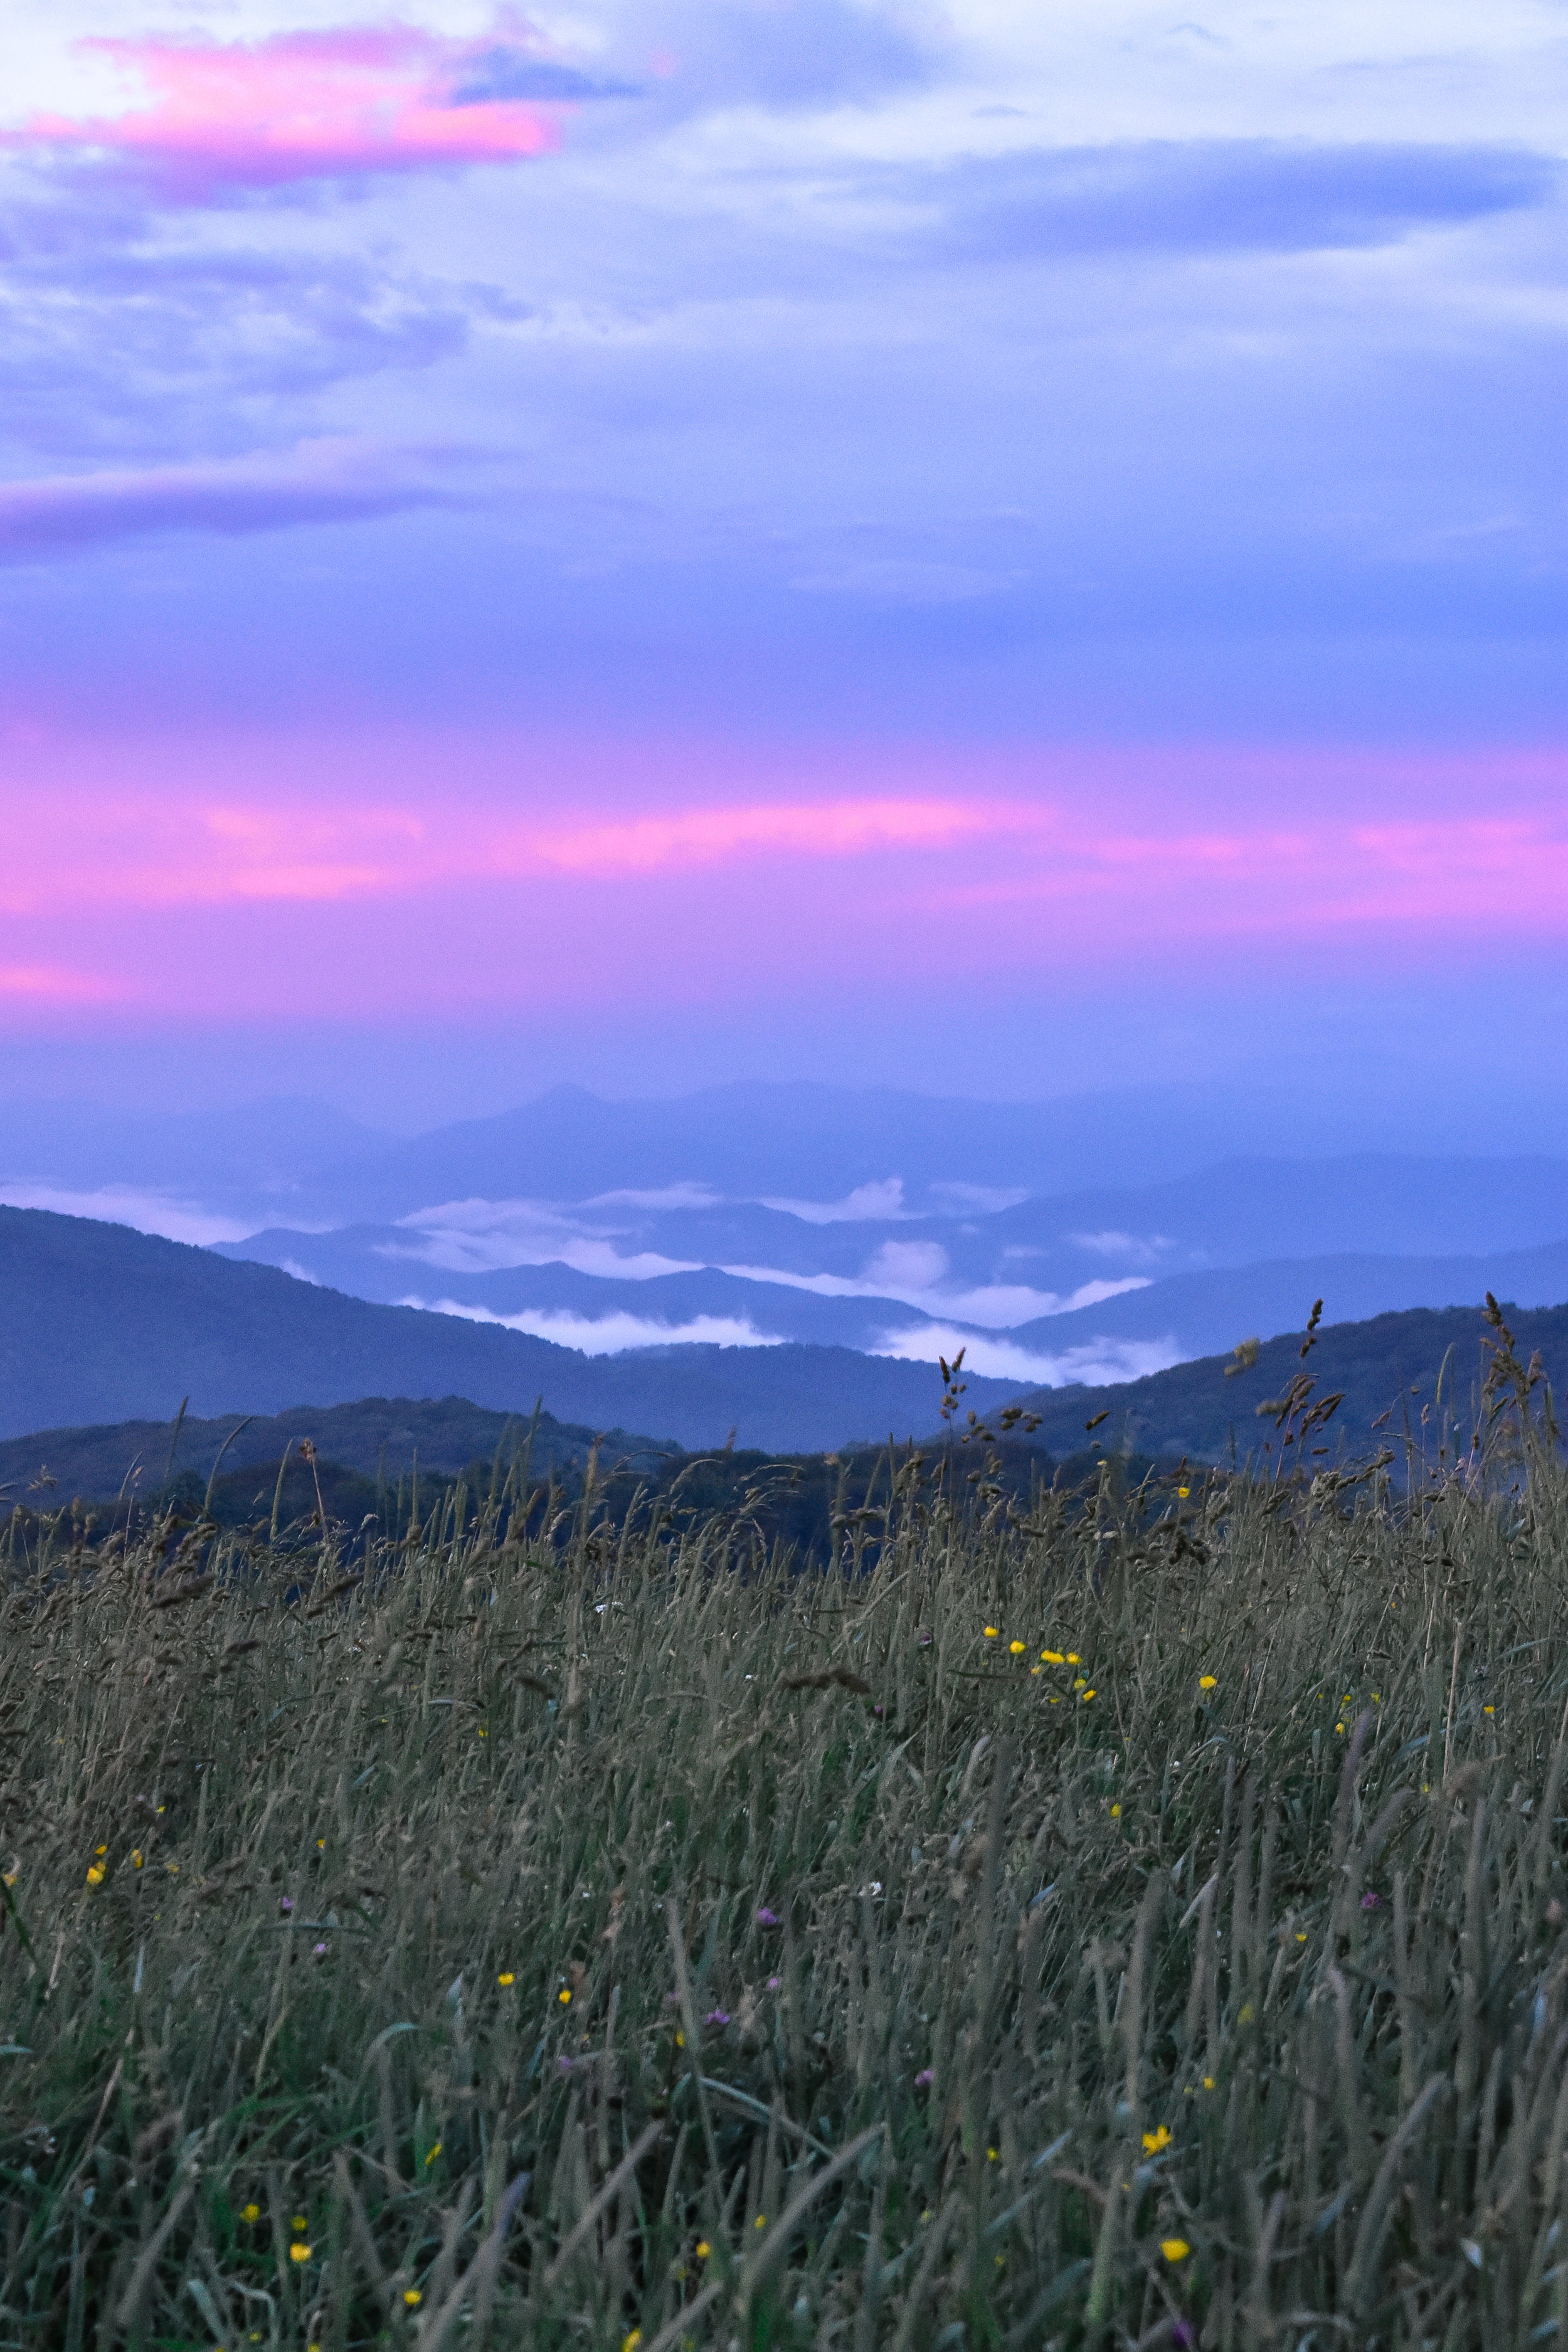 The weather and sunset at Max Patch provided for the coolest mountaintop experience